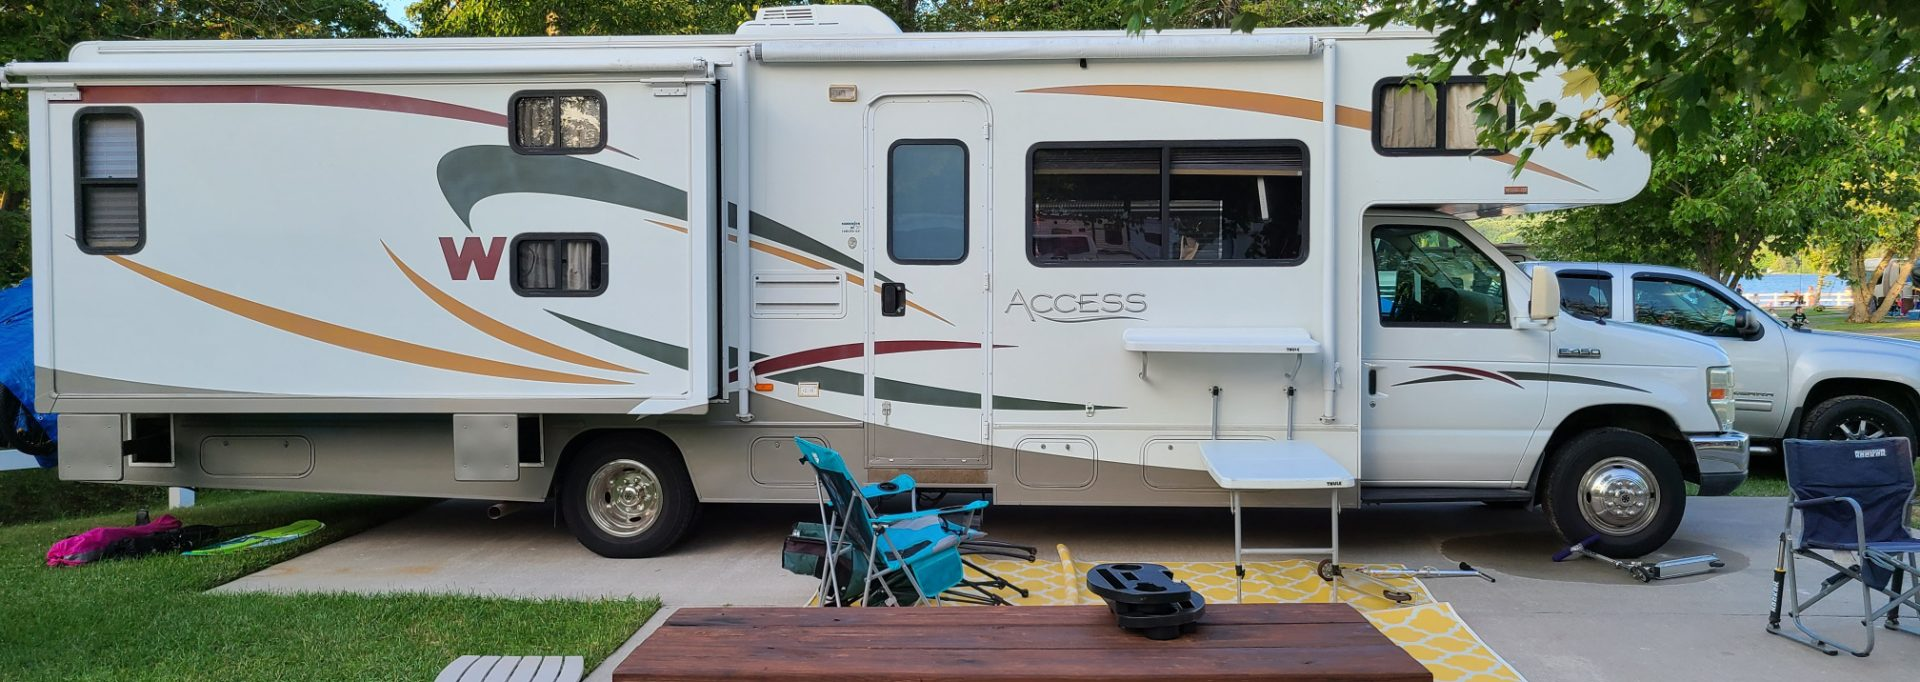 Benefits of RV Camping Motorhome